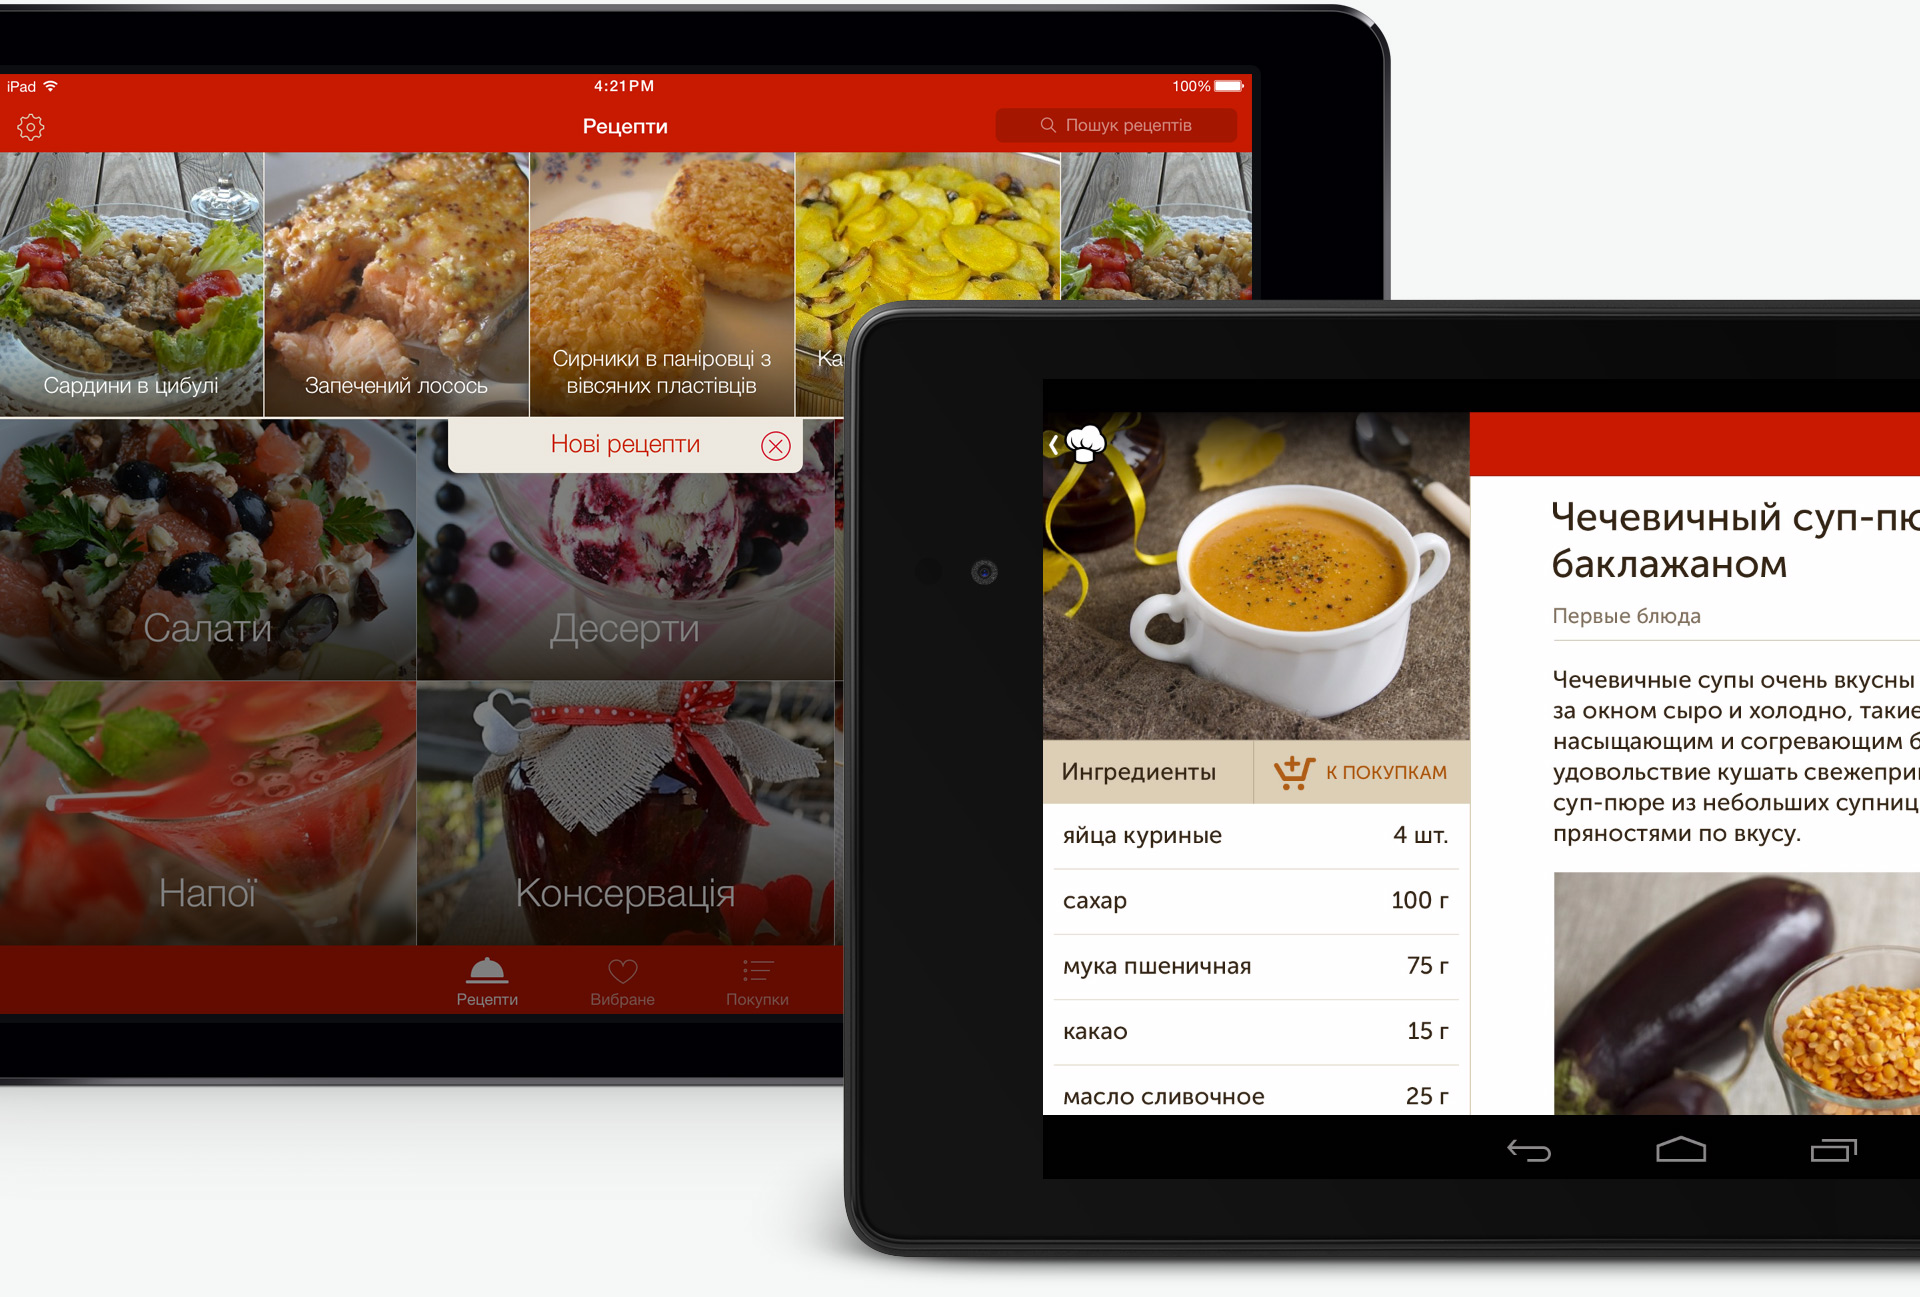 Cookorama cooking app for tablets